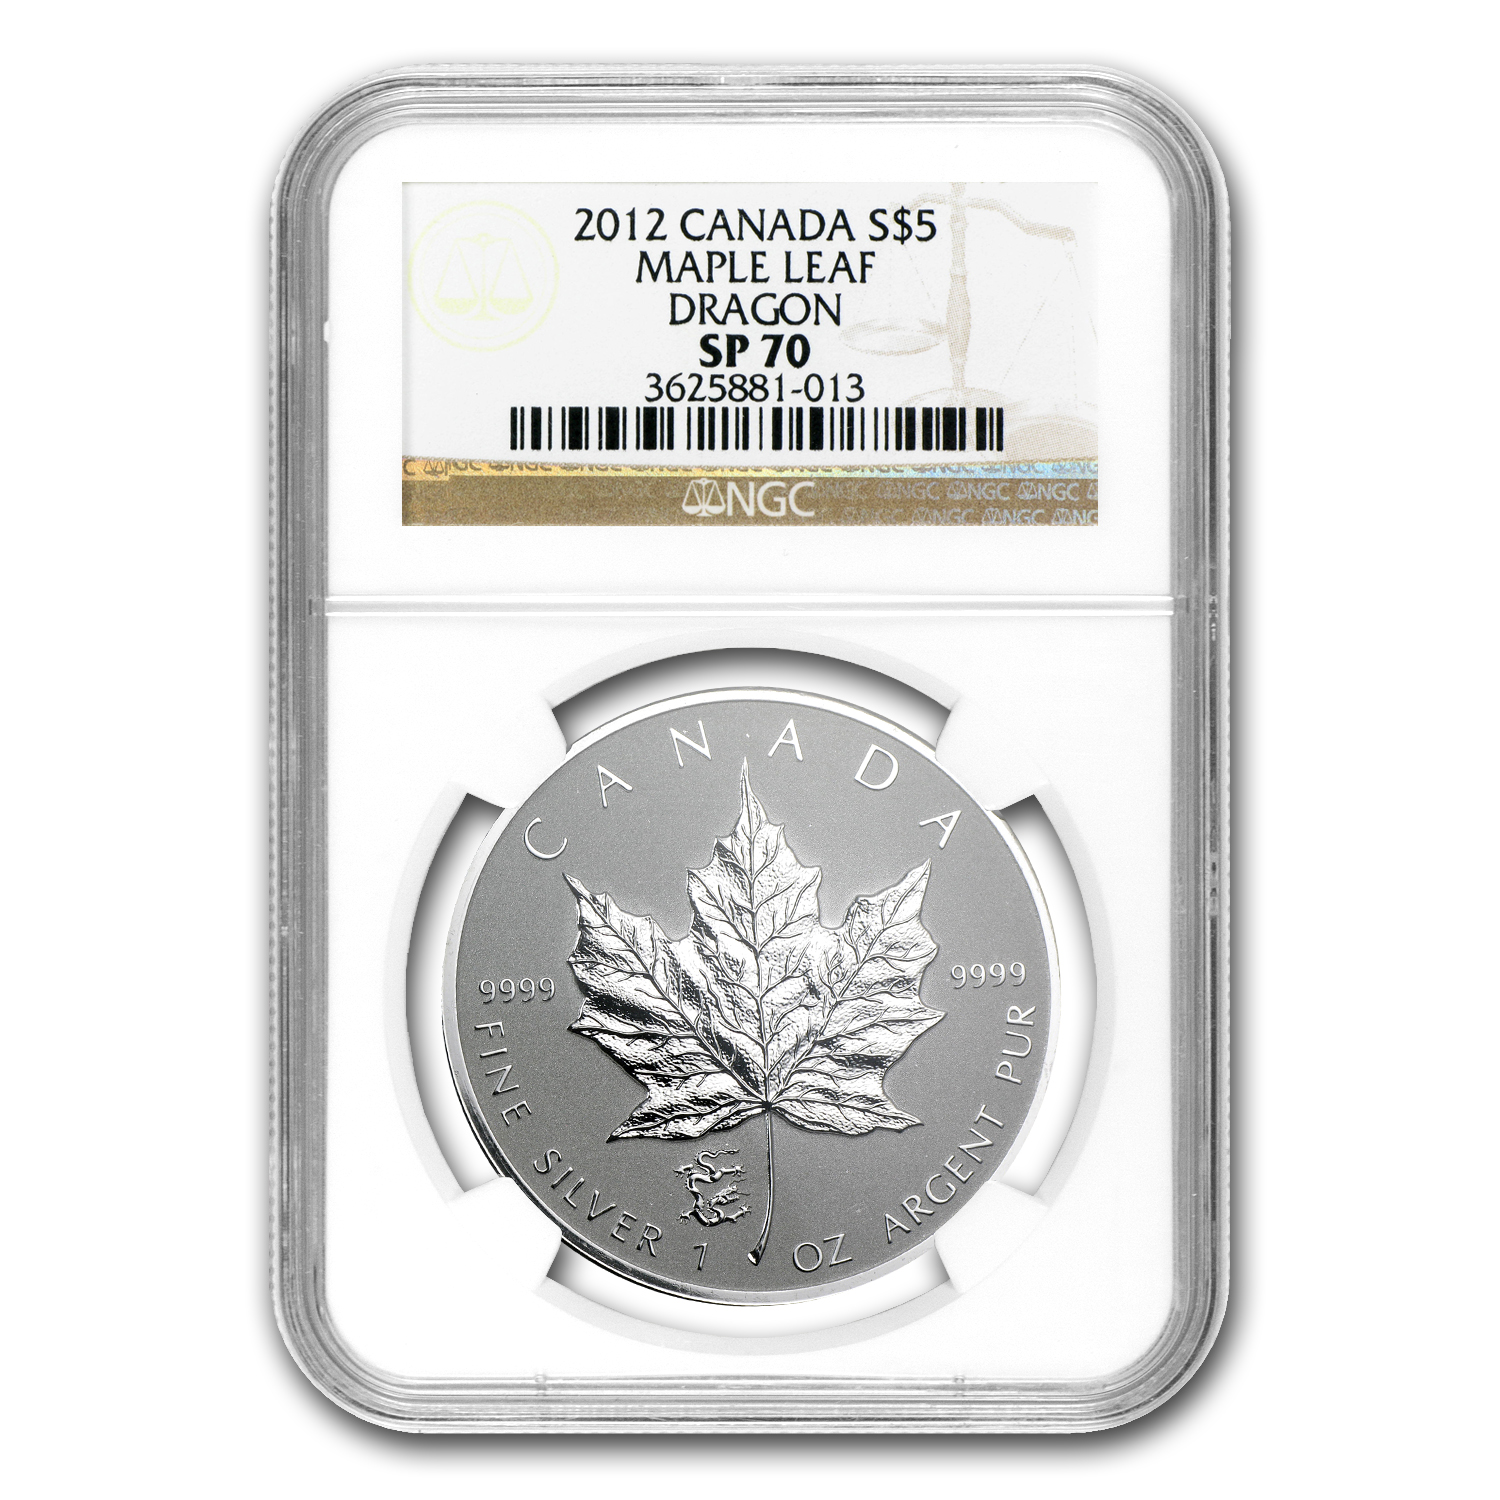 2012 Canada 1 oz Silver Maple Leaf Dragon Privy SP-70 NGC